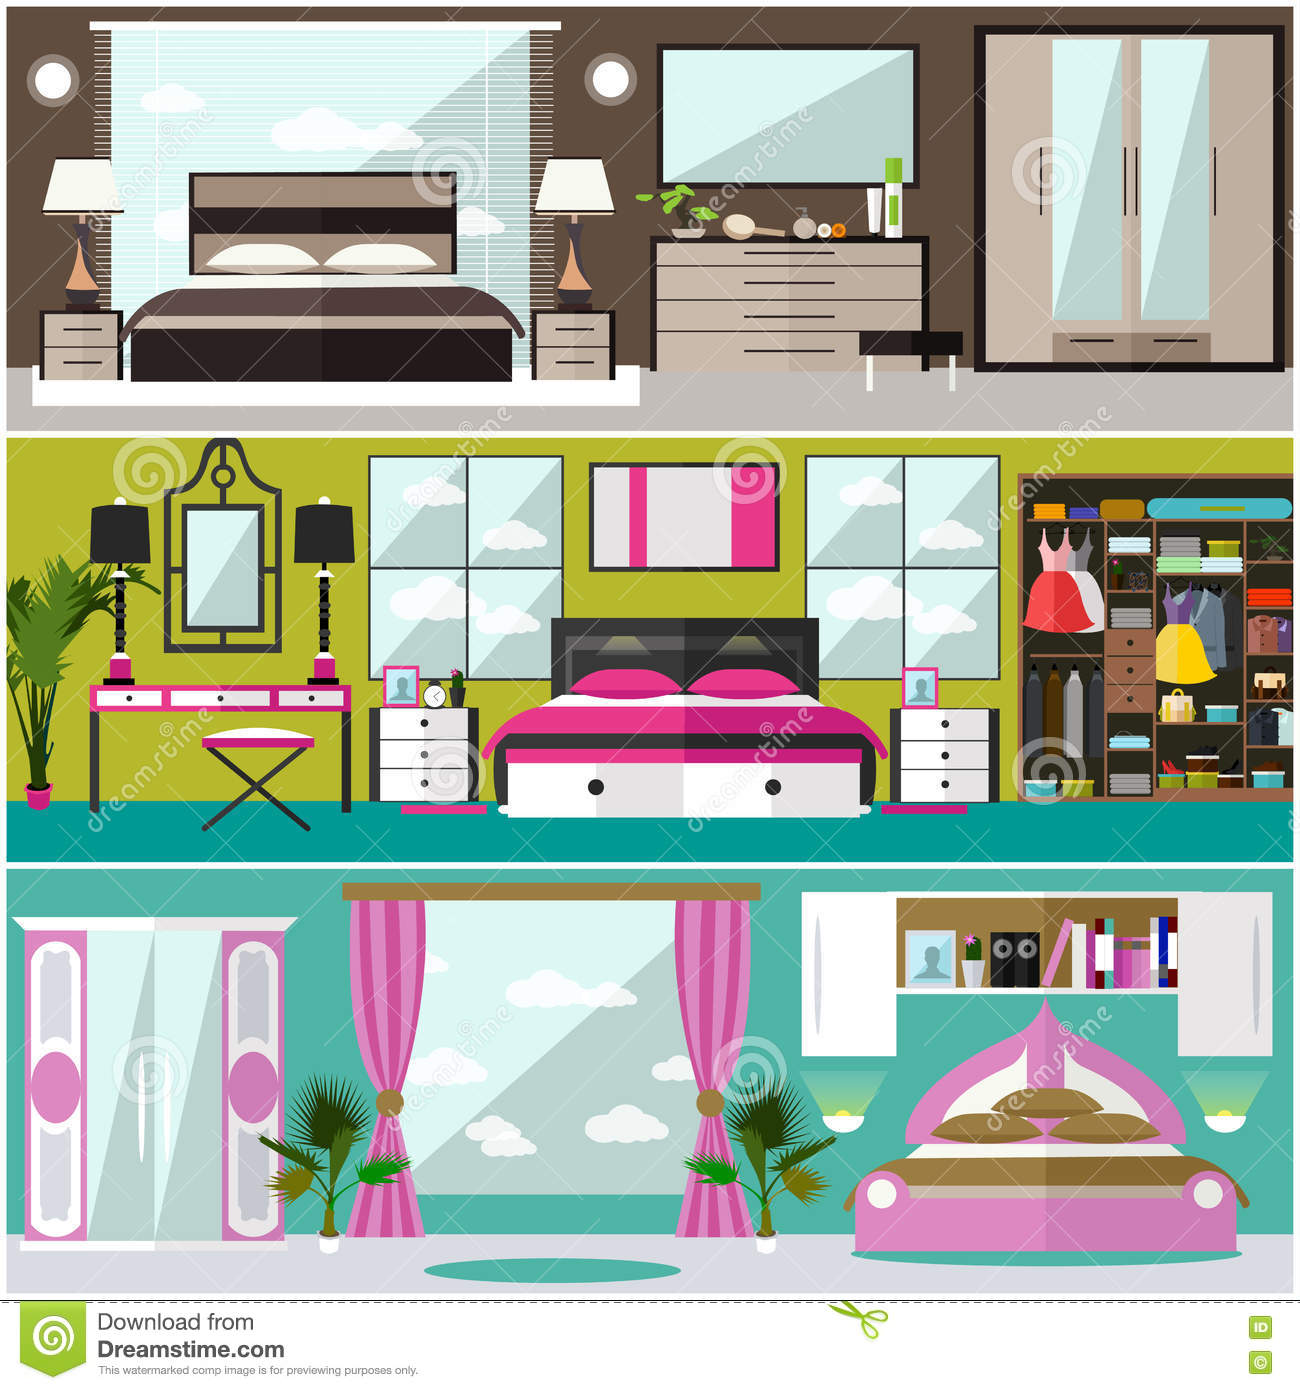 Bedroom interior banners set in flat style vector for Room design vector